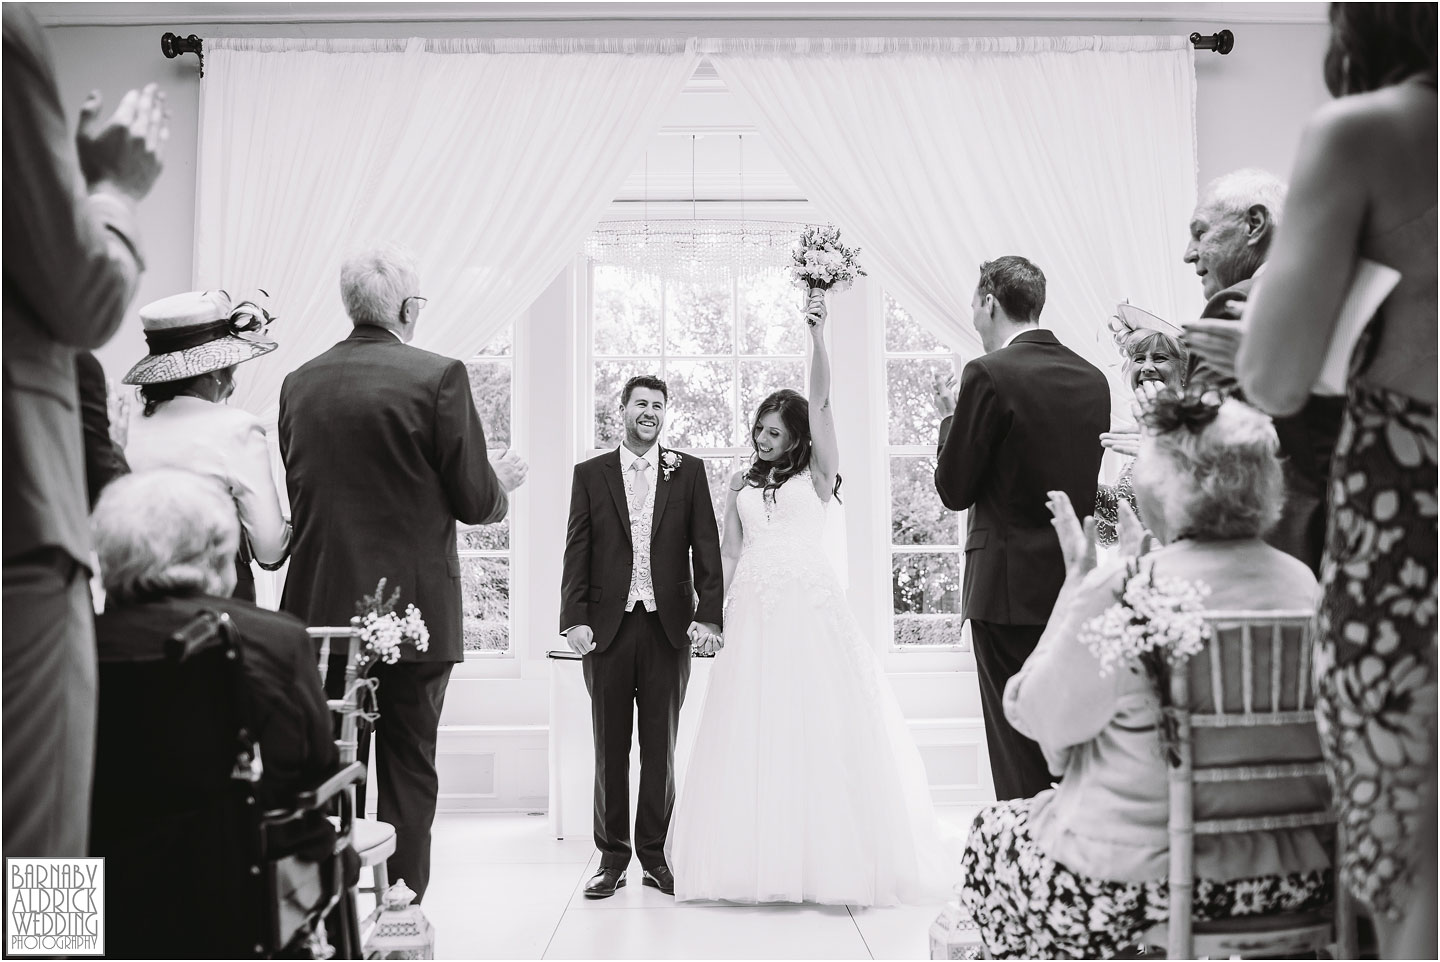 Wedding ceremony joy at Saltmarshe Hall near Goole in East Yorkshire, Wedding photography at Saltmarshe Hall, East Yorkshire Wedding Photographer